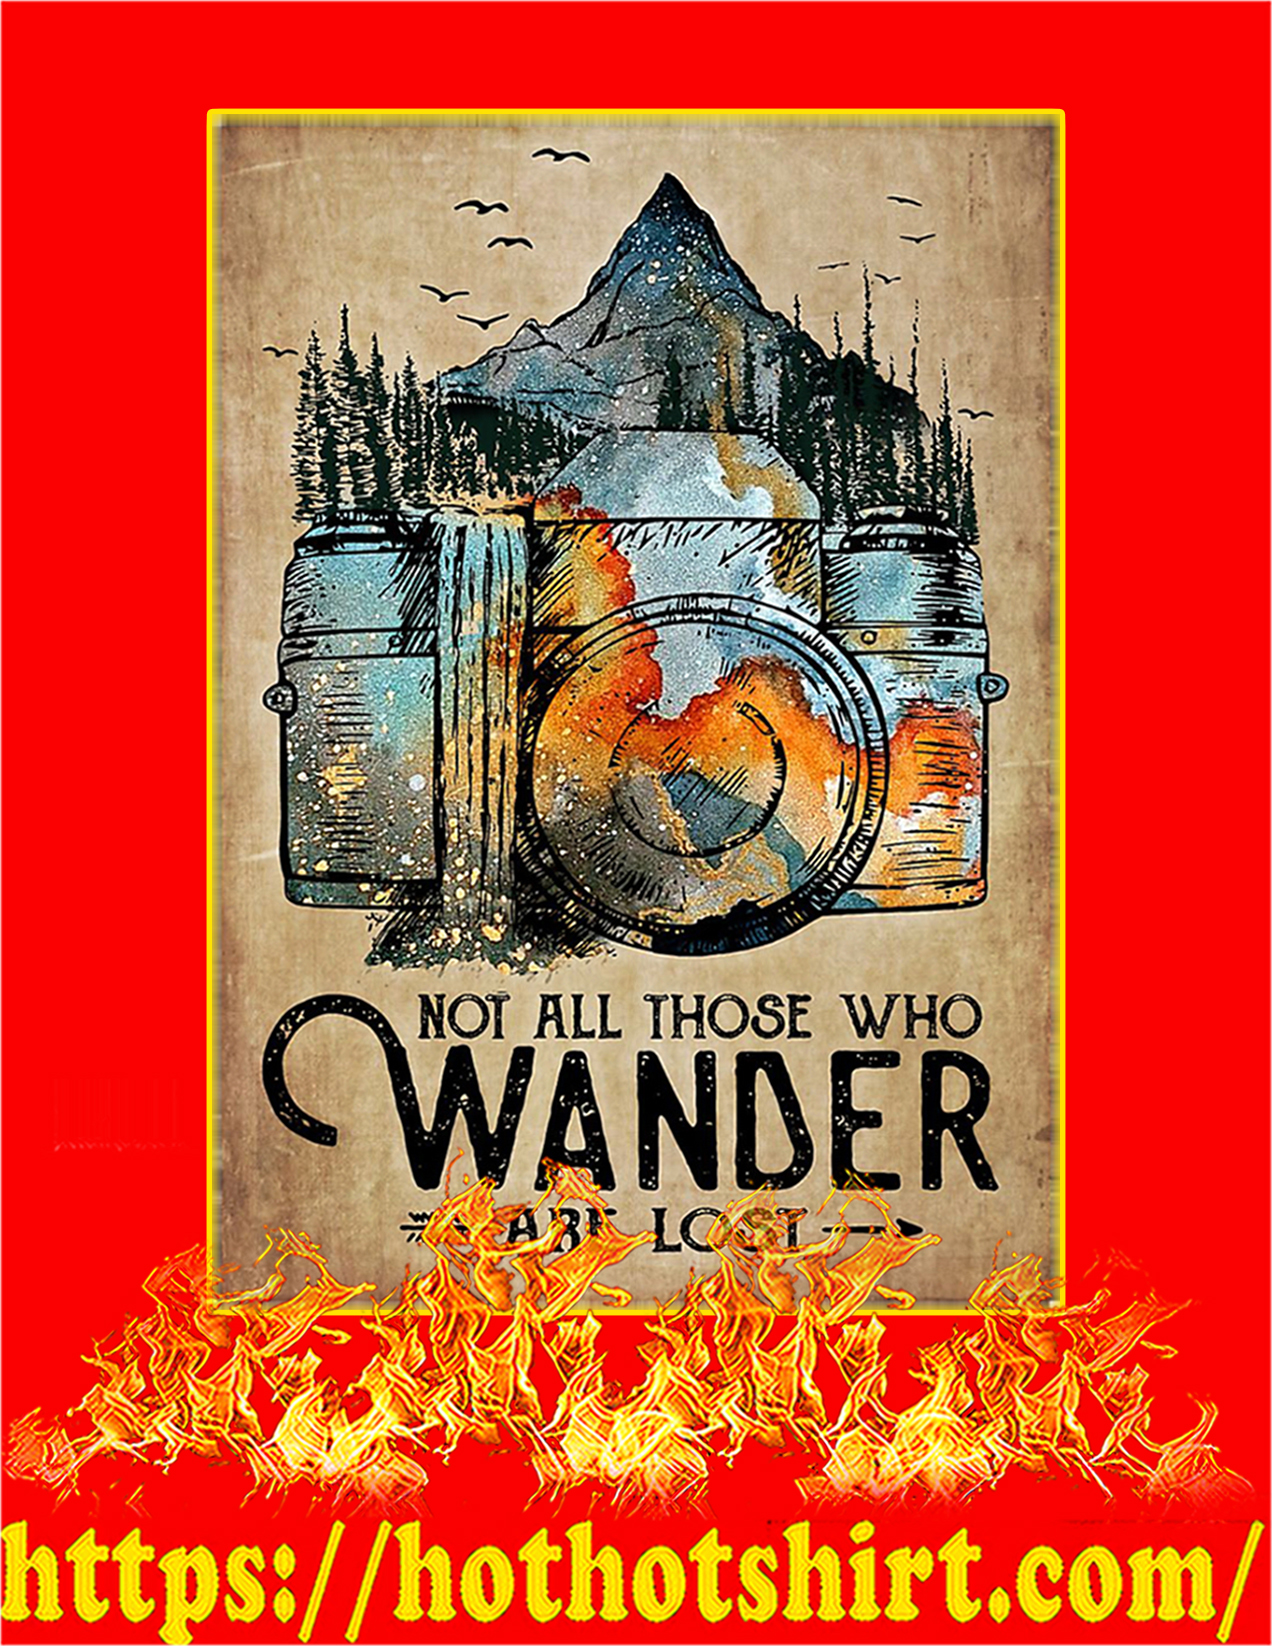 Photographer not all those who wander are lost poster